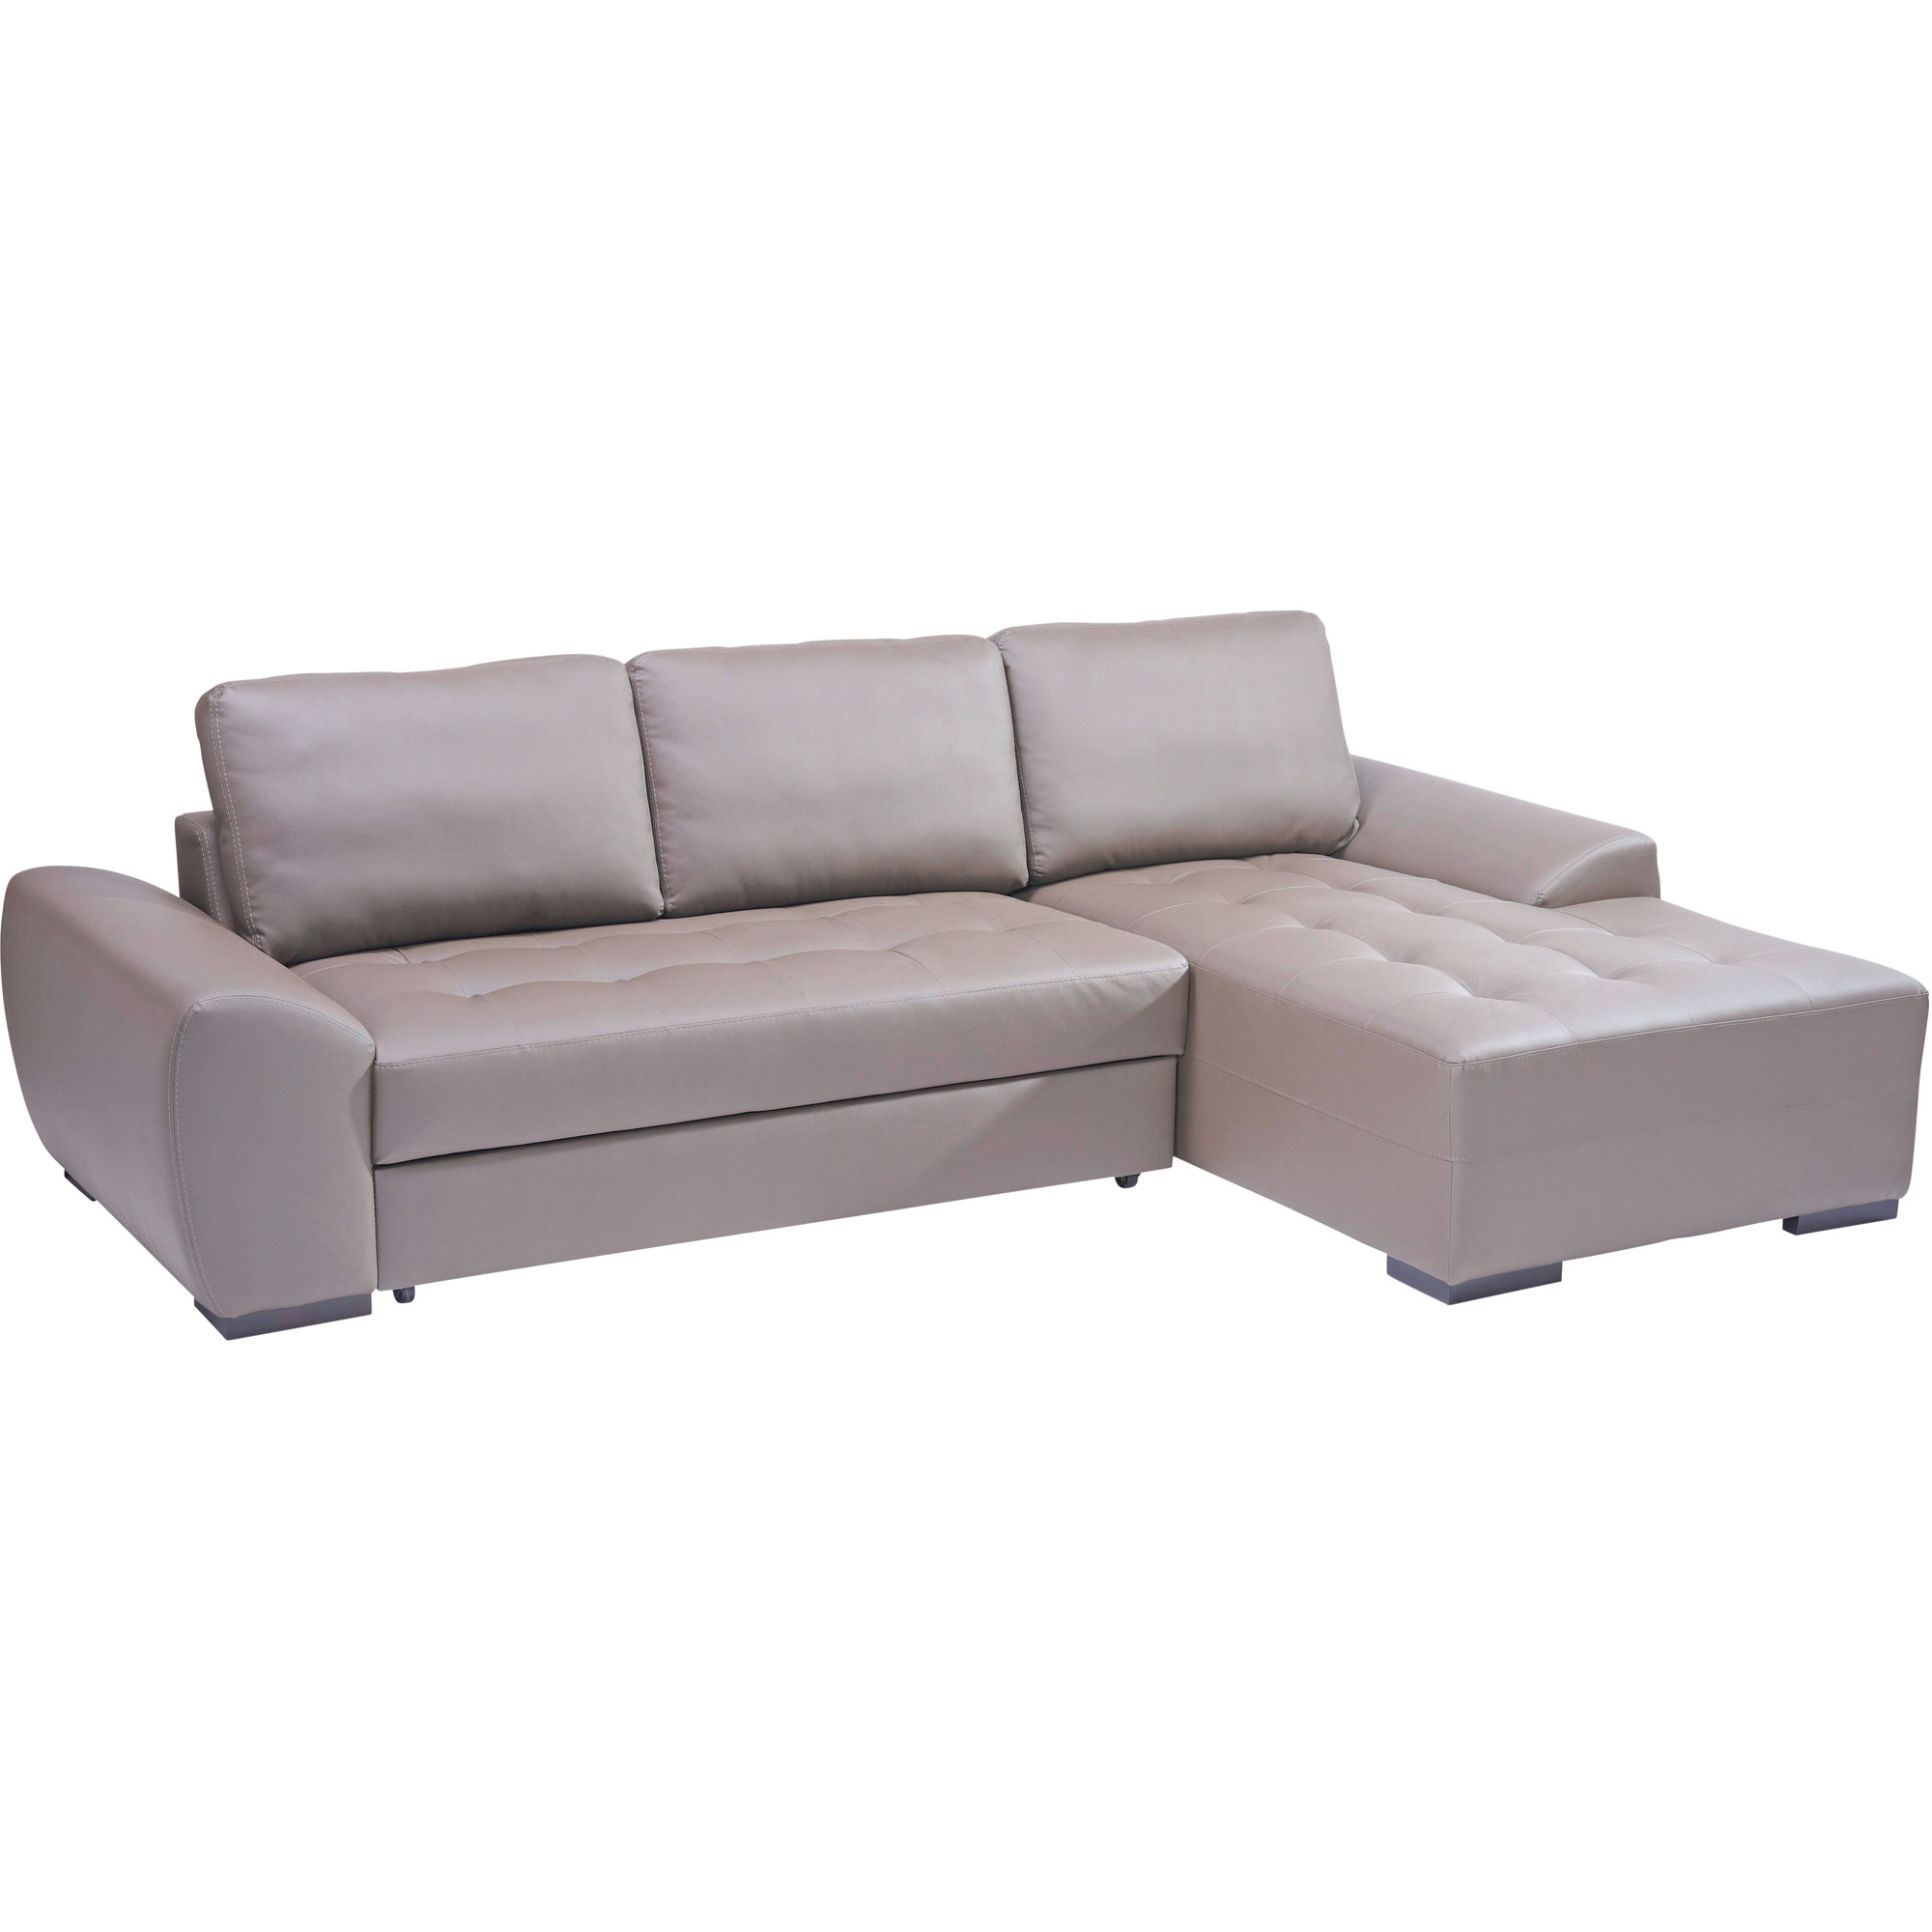 Canap d 39 angle droite convertible rubix taupe anniversaire 40 ans - Canape d angle convertible couleur taupe ...